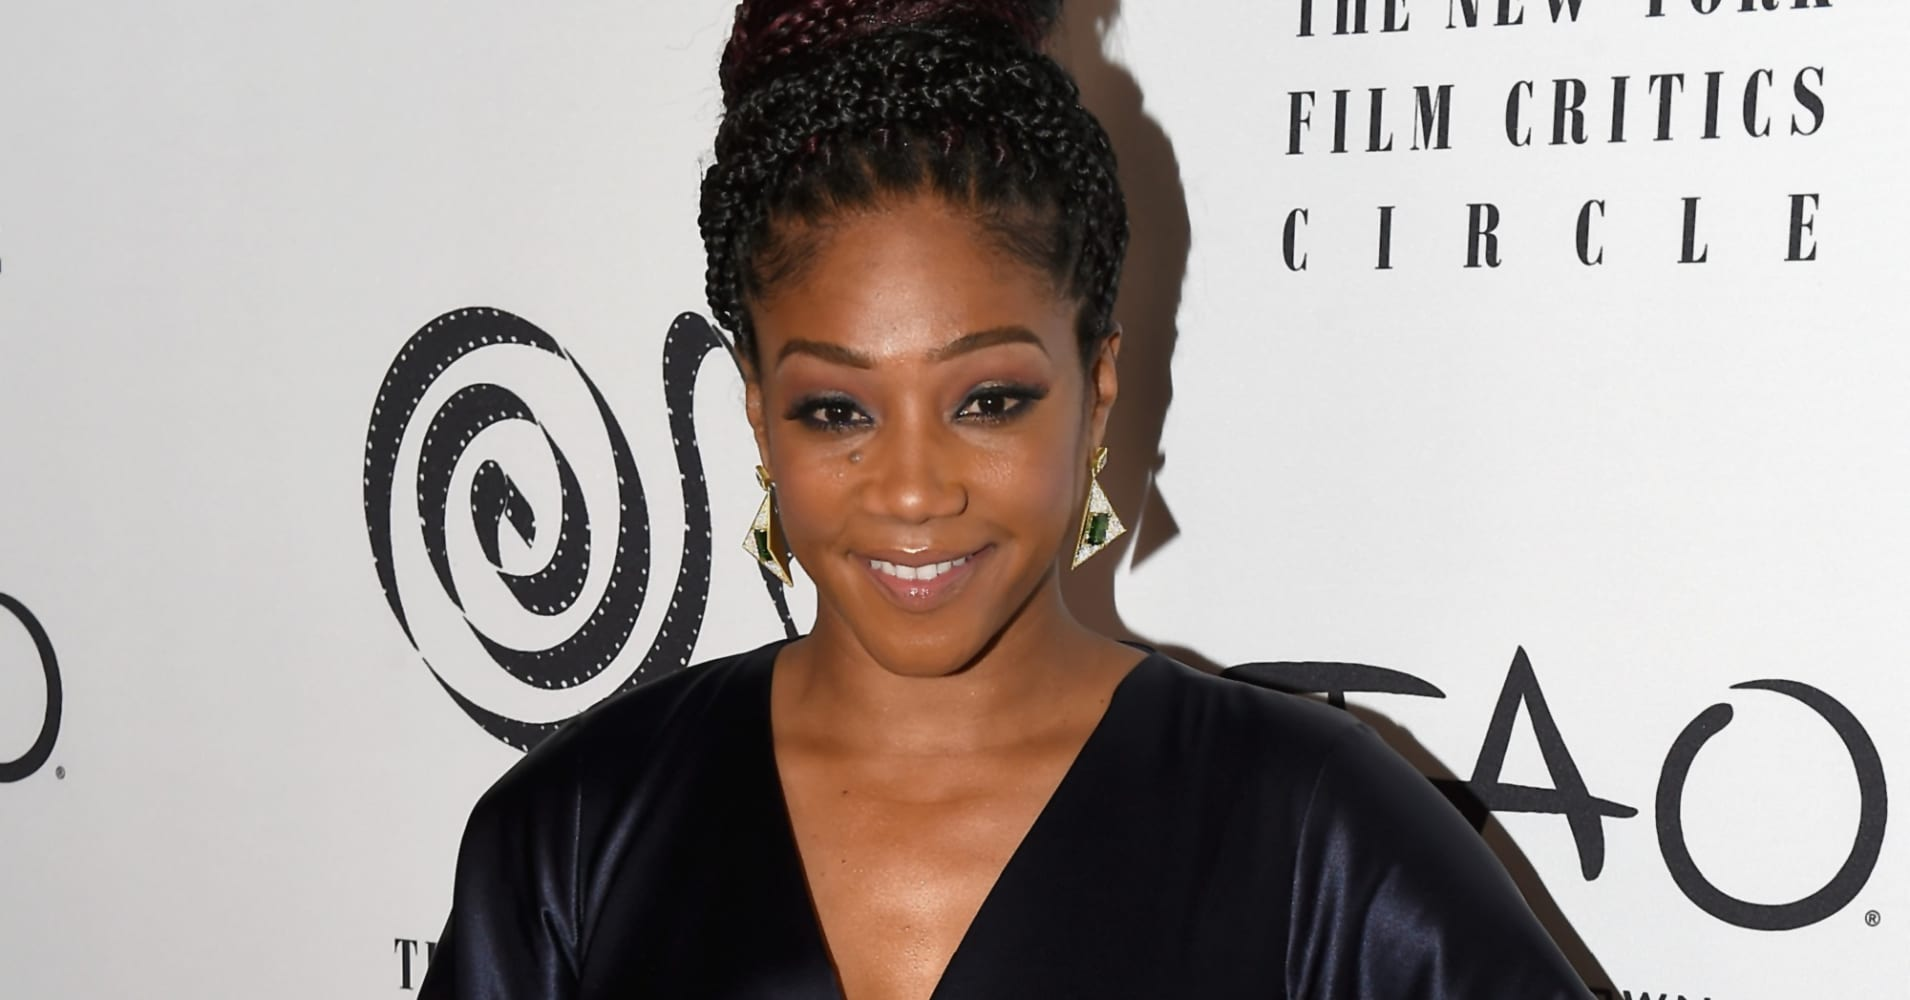 Tiffany Haddish Hilariously Reacts To Her Oscars Snub